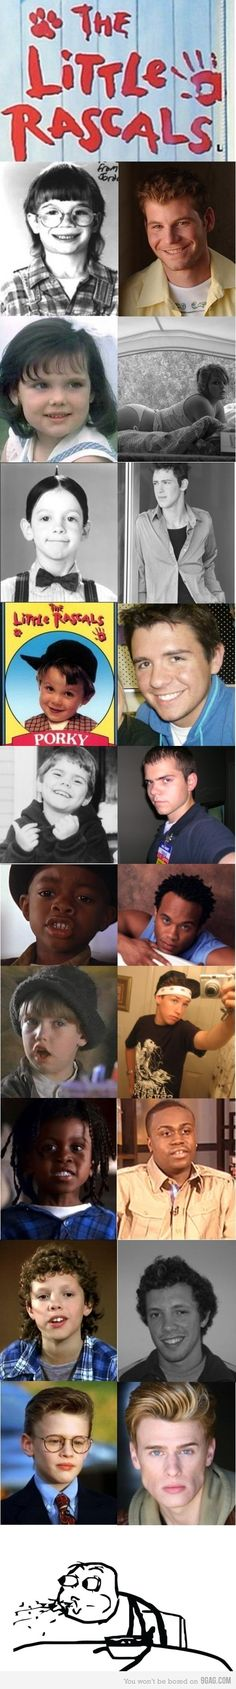 Little Rascals all grown up  --HOW DID SPANKY END UP WORKING AT WALMART????